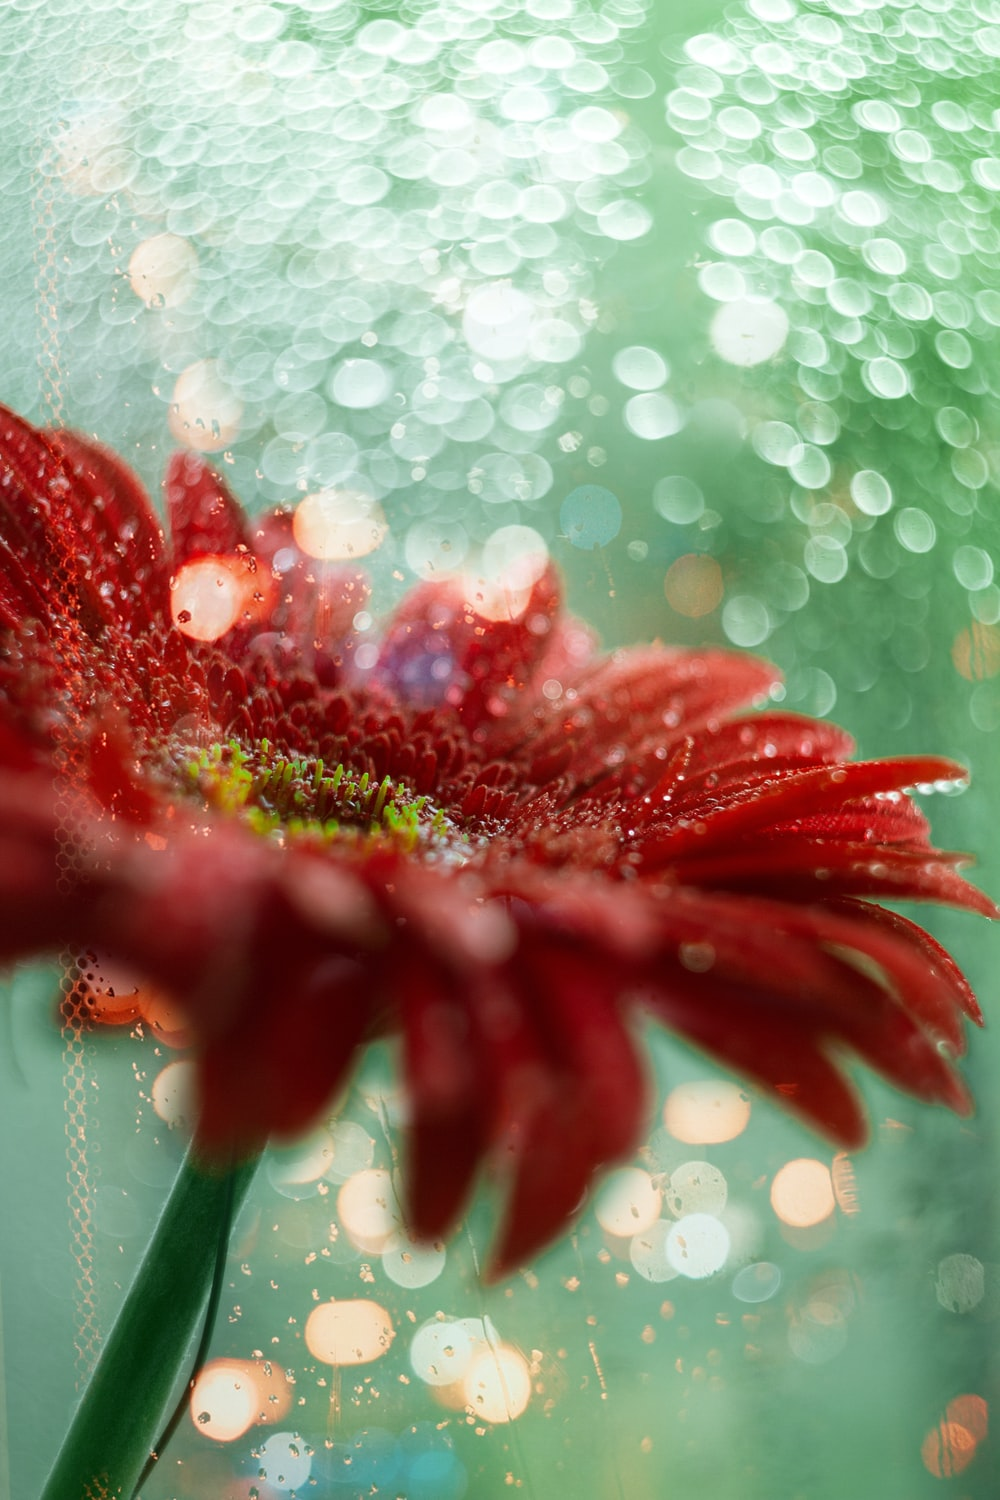 red-petaled flowers with water droplets